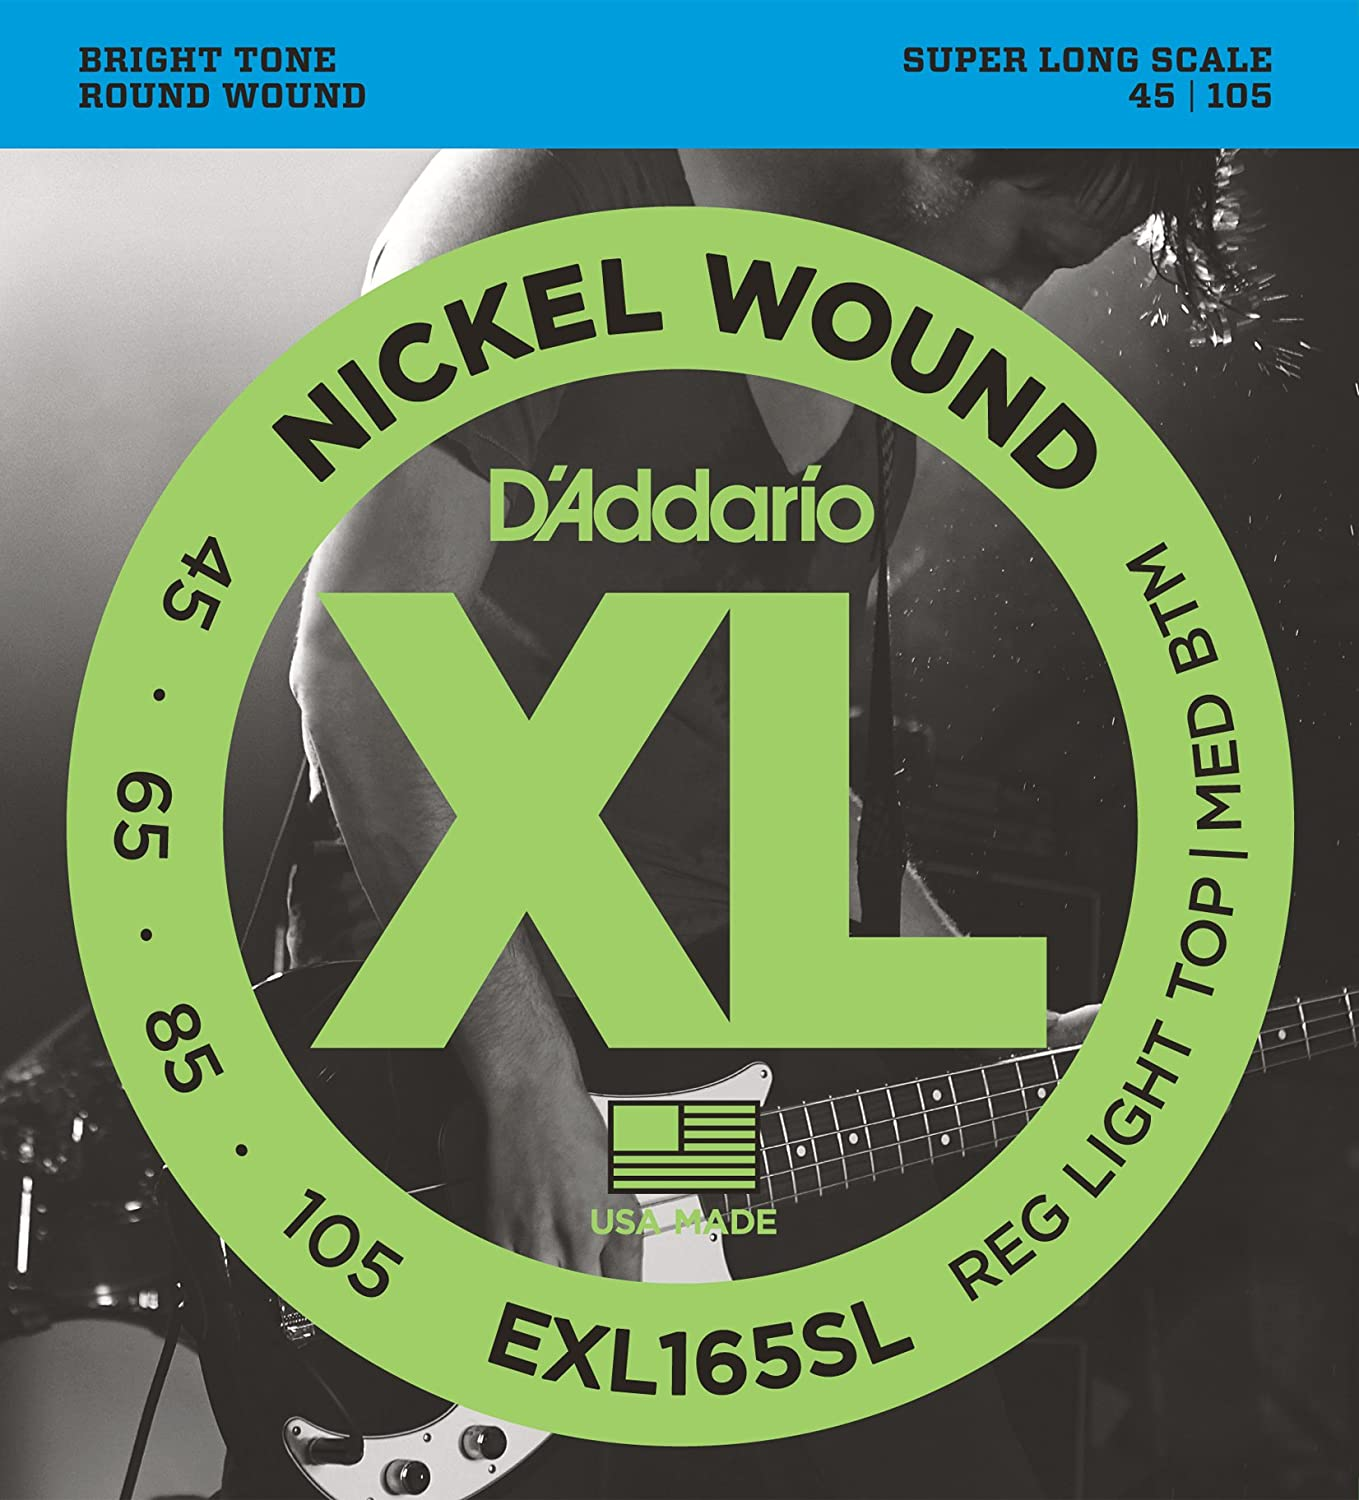 D'Addario EXL160-5 5-String Nickel Wound Bass Guitar Strings, Medium, 50-135, Long Scale D'Addario